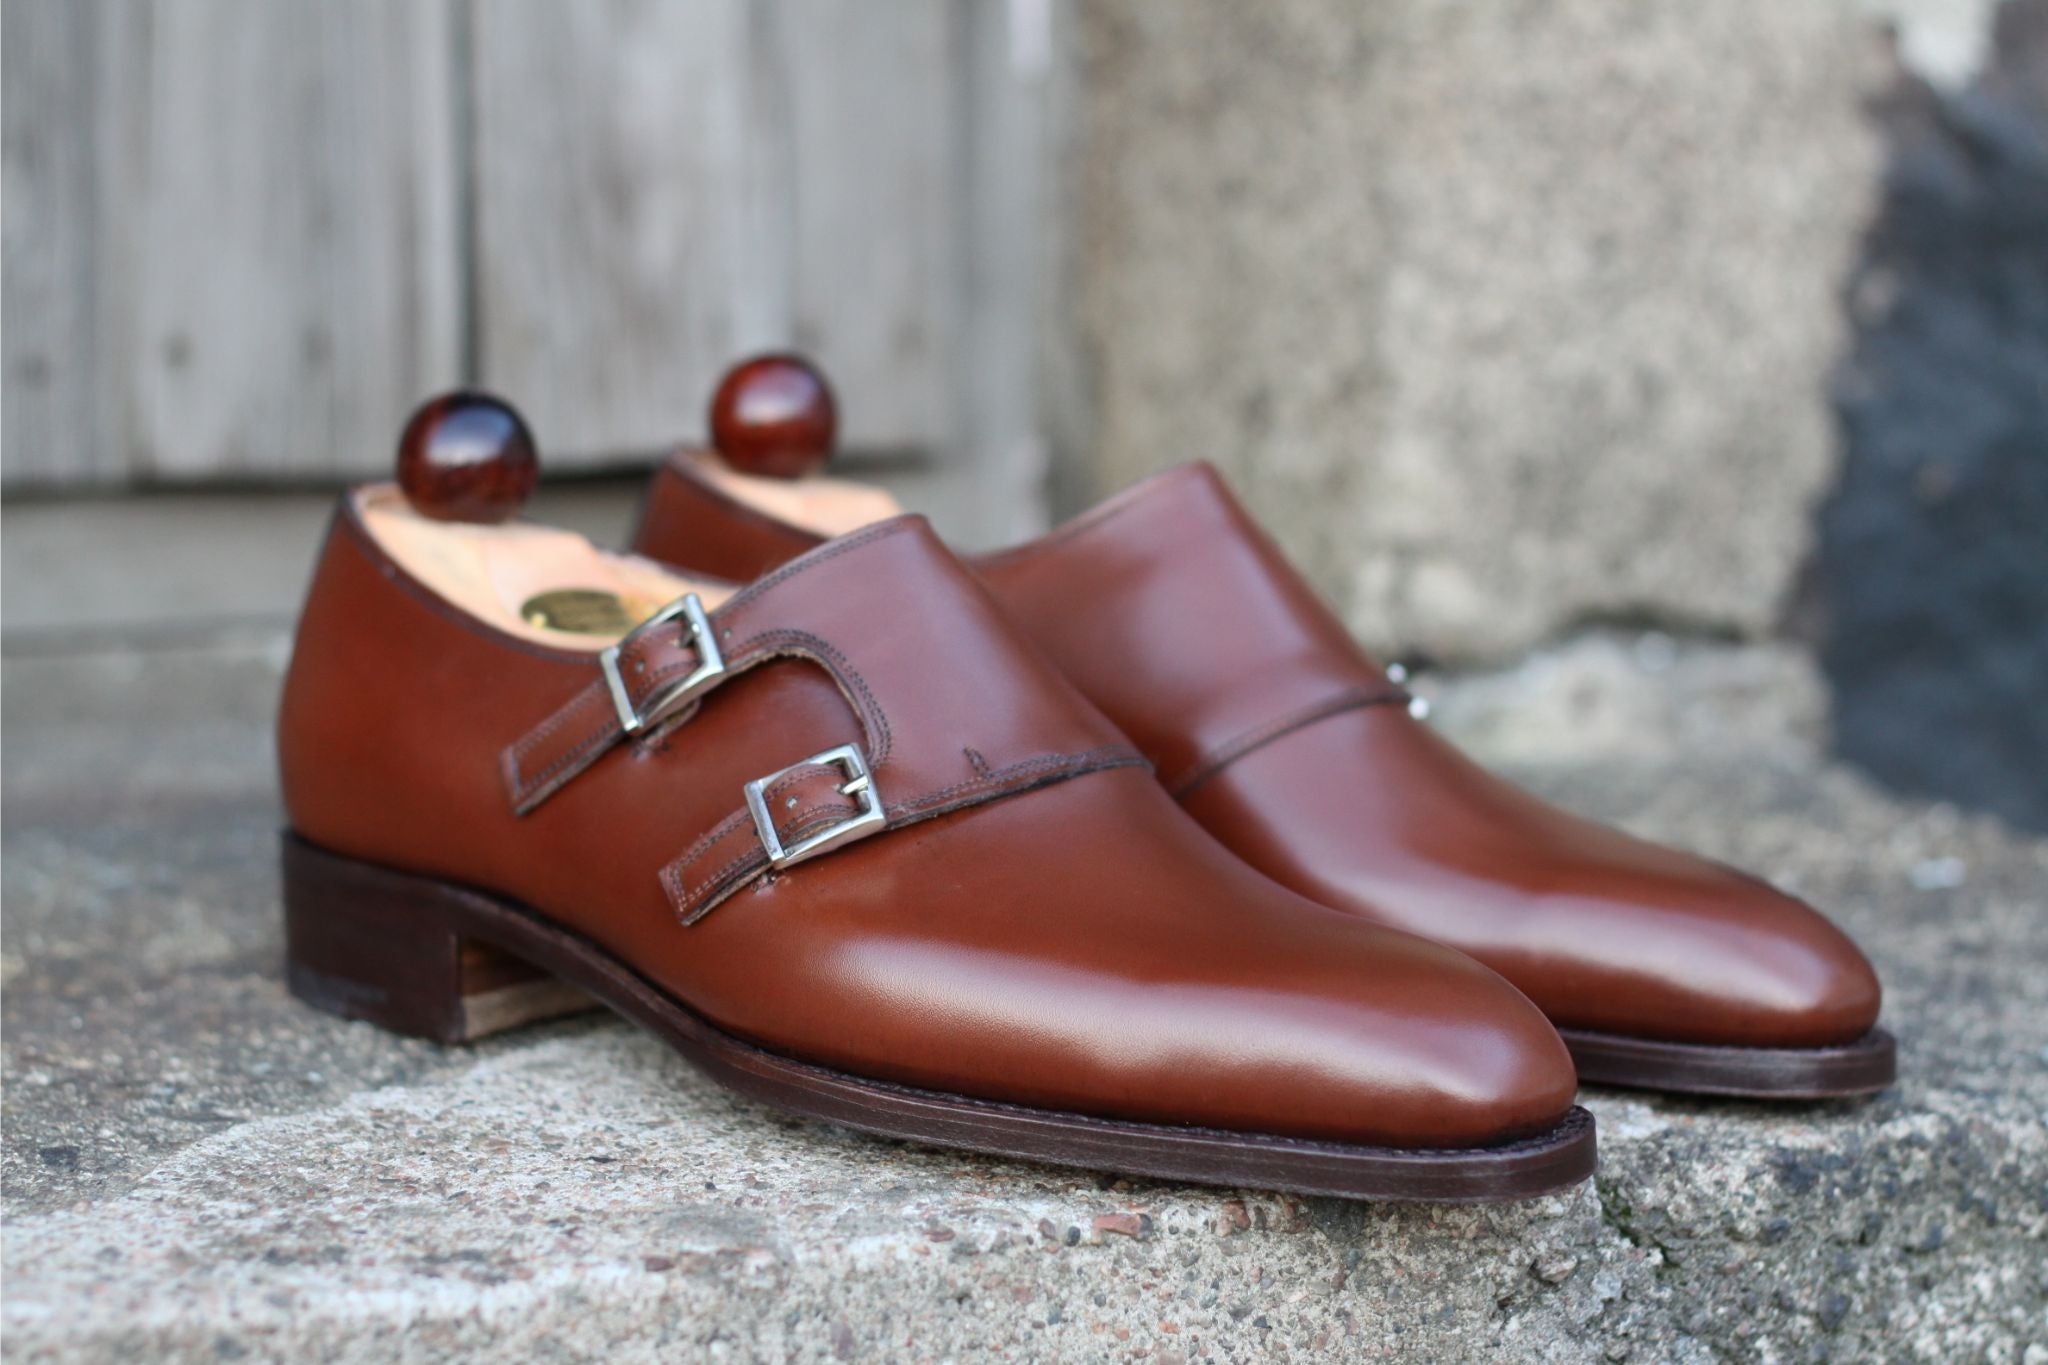 Vass Shoes - U-last monk shoes